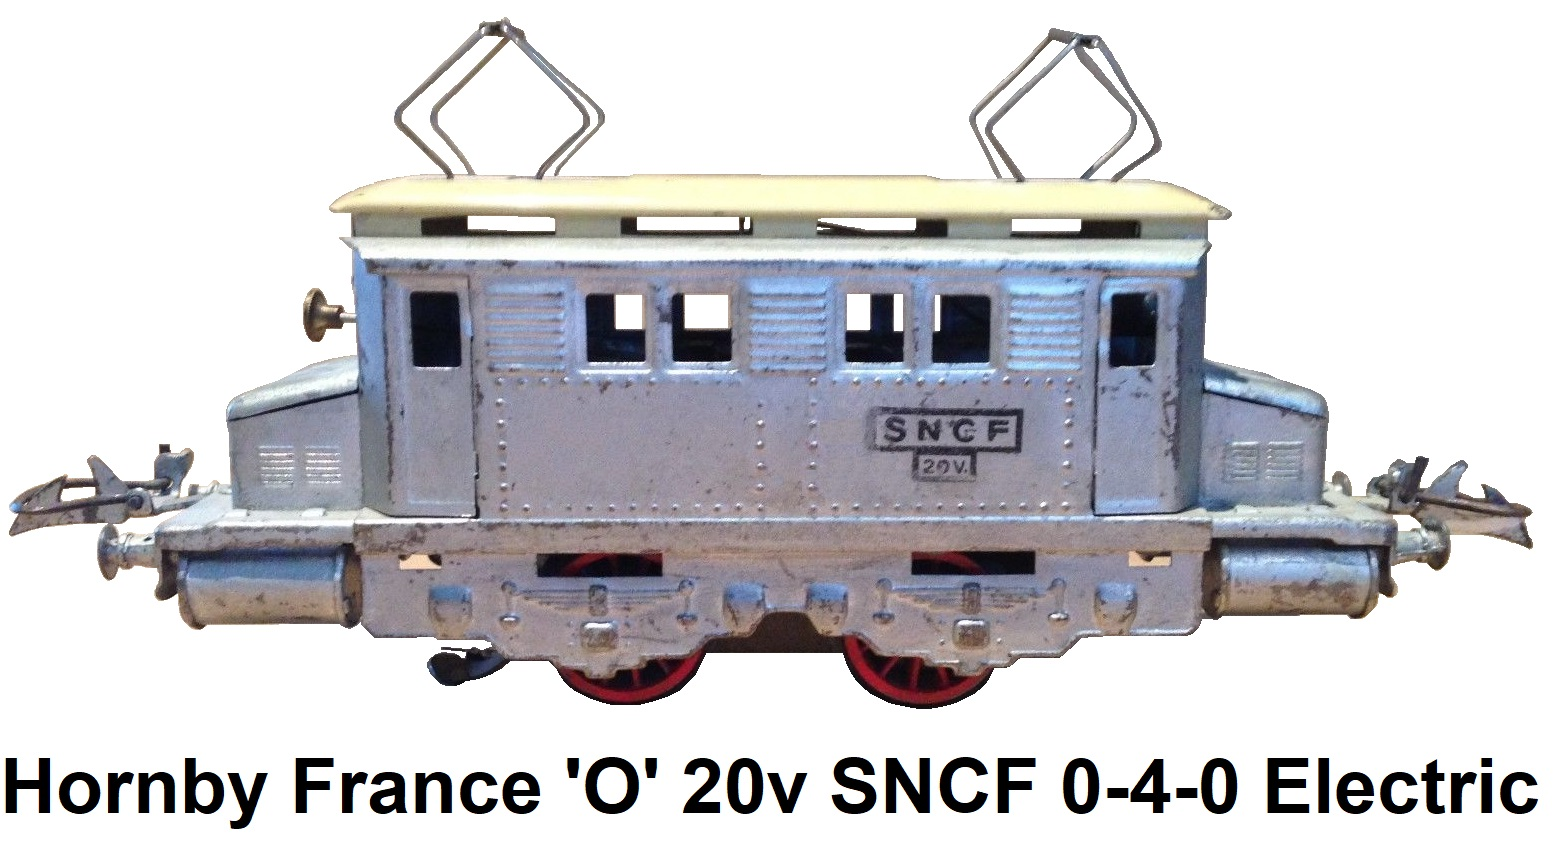 Hornby 'O' gauge French 20v Electric SNCF Silver 0-4-0 with overhead pantographs